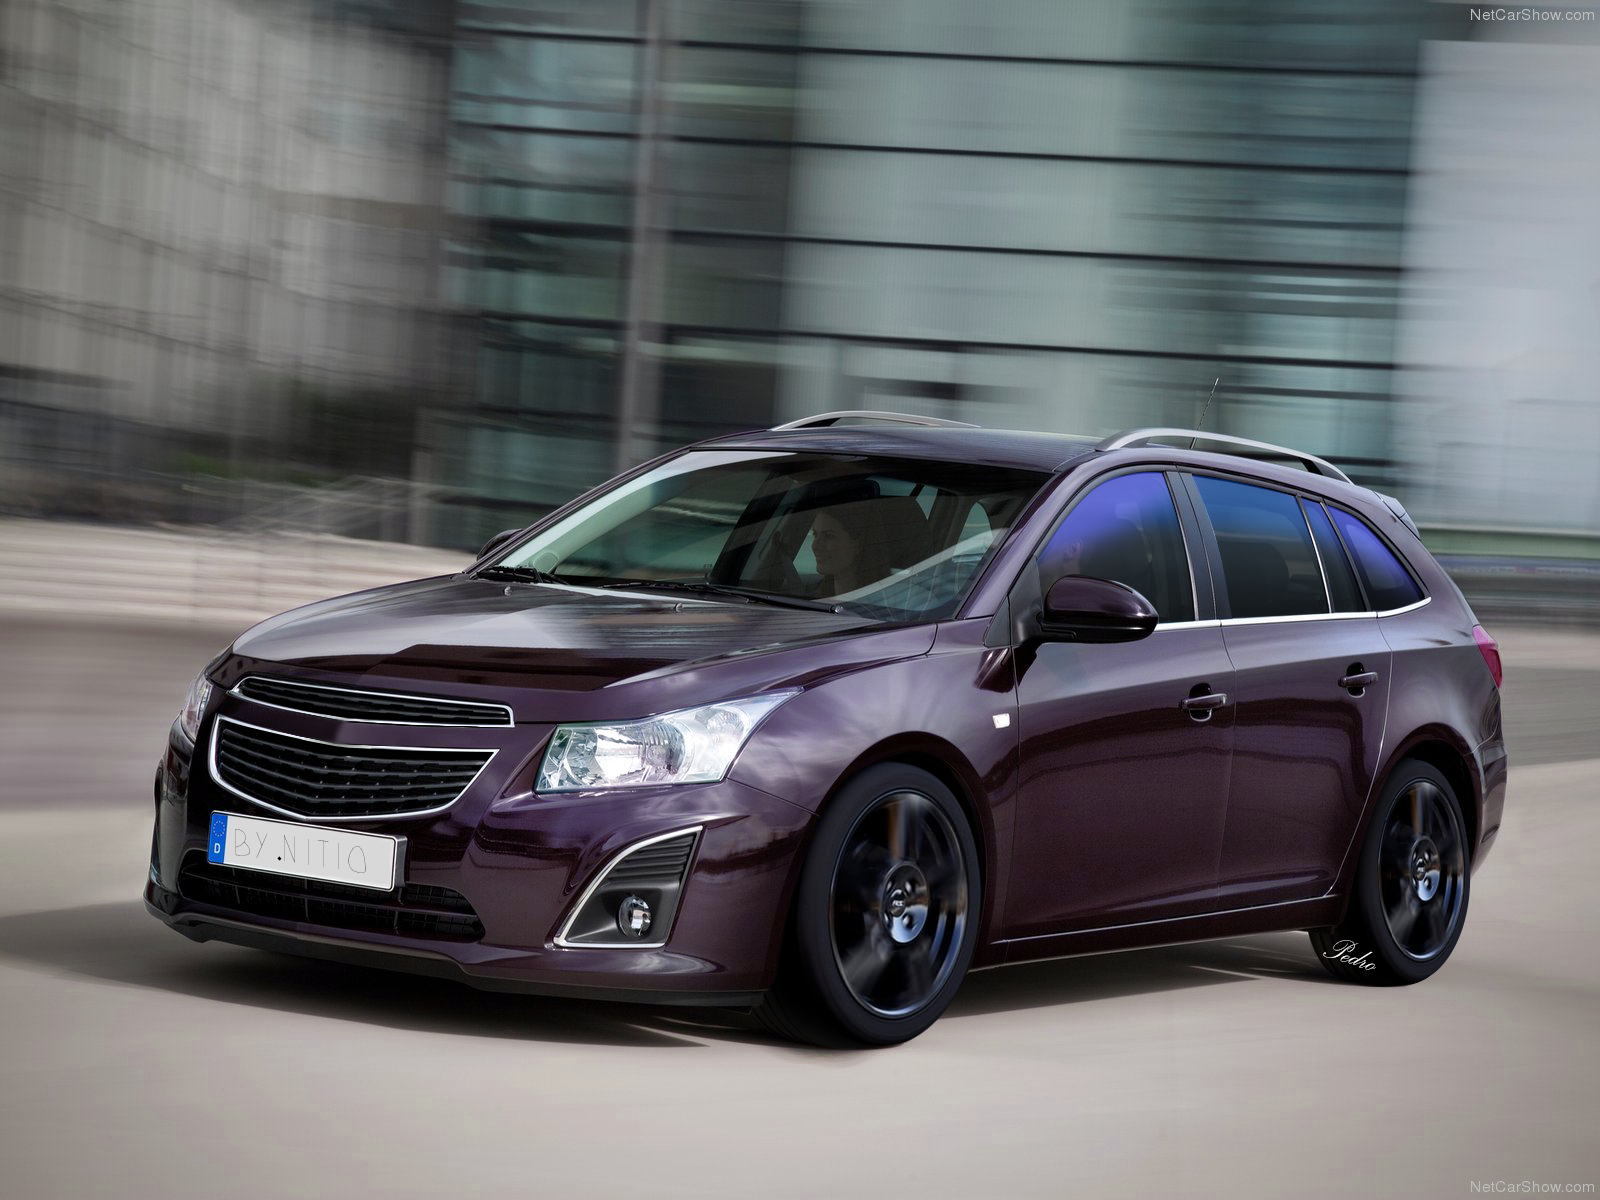 Cruze Wagon Cruze_wagon_simple_by_pedrodesigner-d6p872n